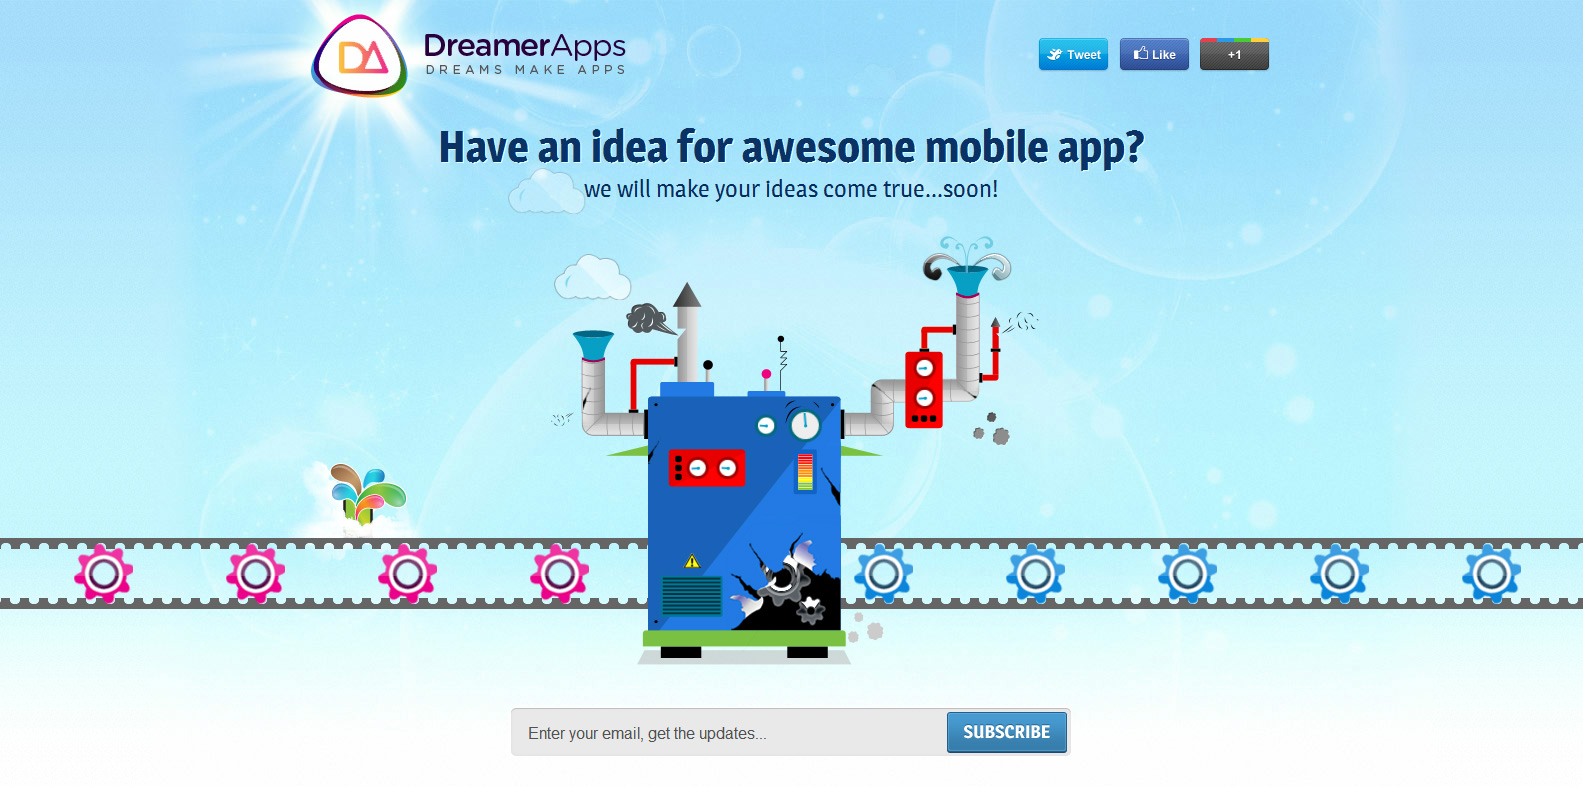 DreamerApps Website Screenshot